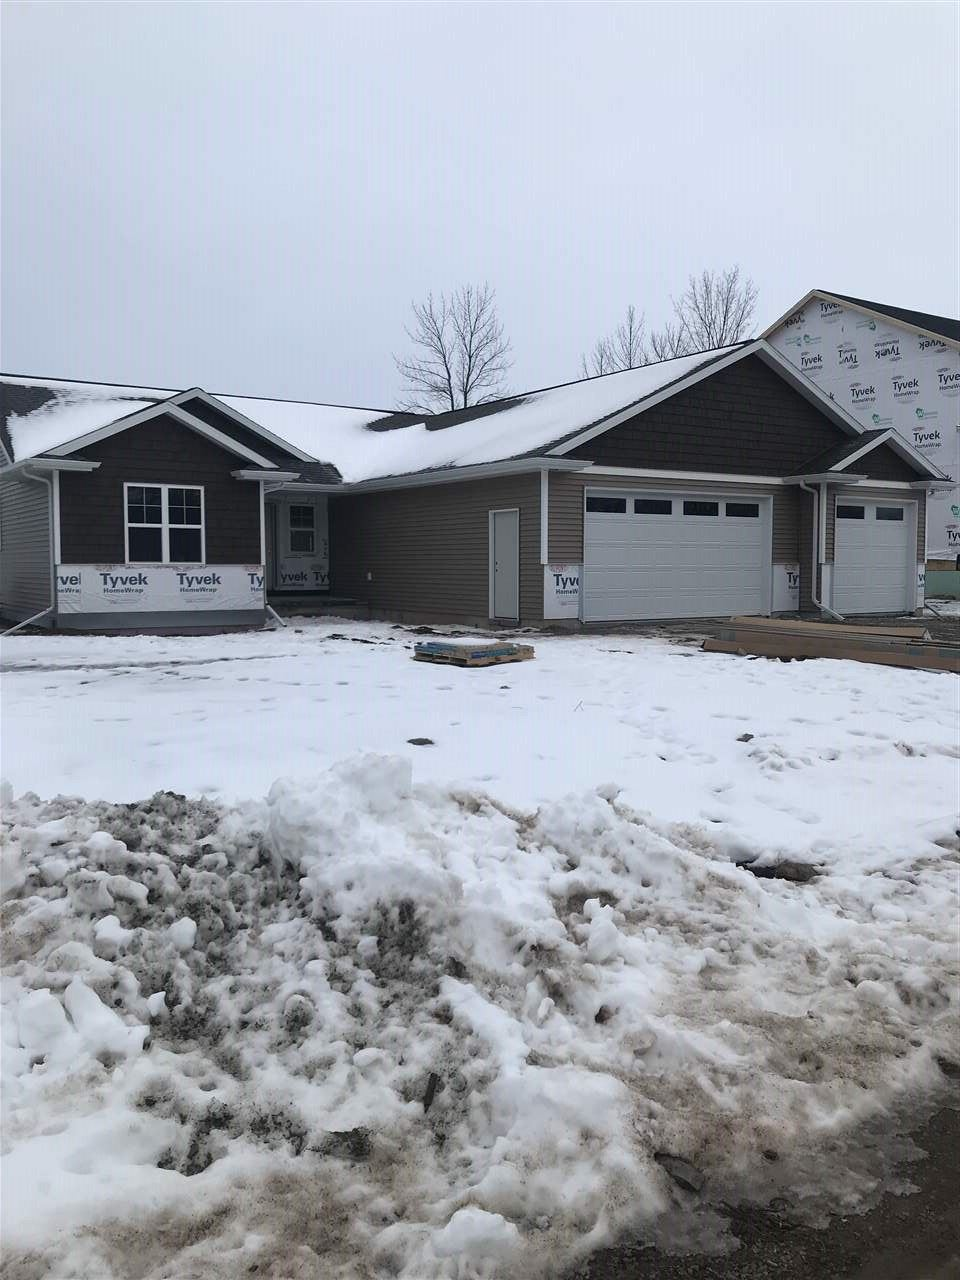 2542 CAVALRY Lane, Neenah, WI 54956 - MLS#: 50232664